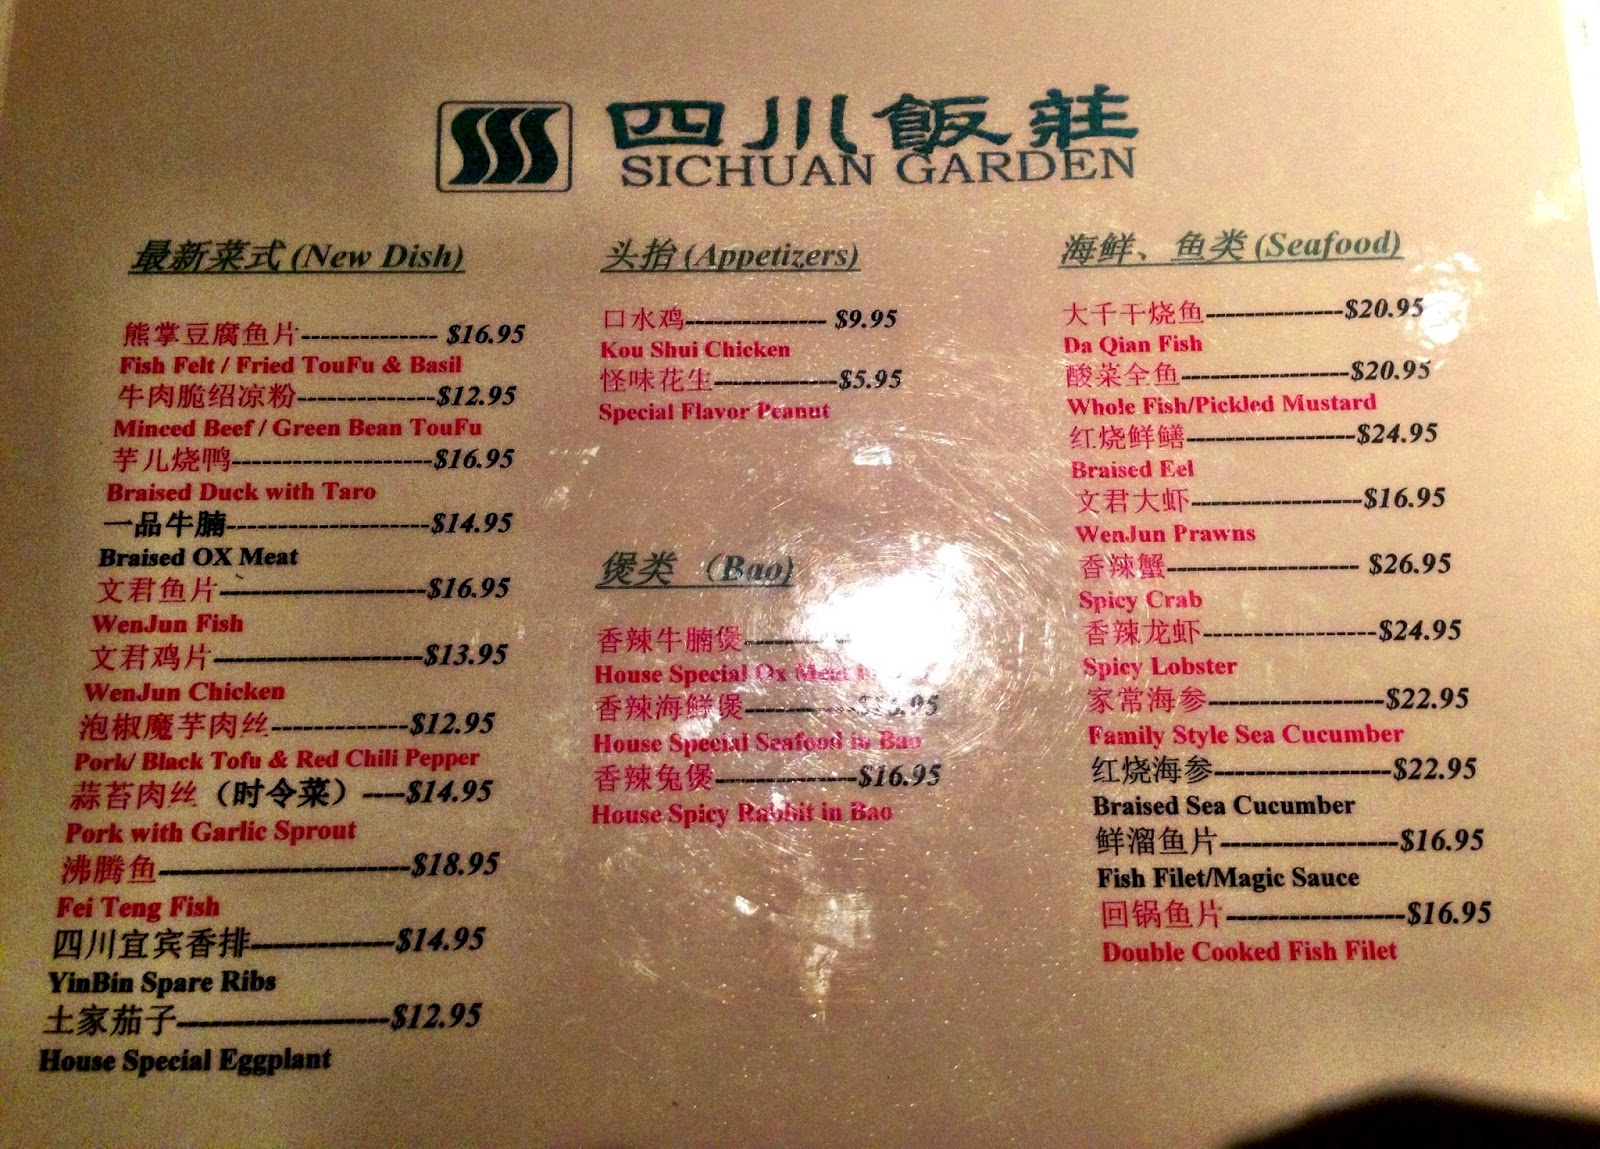 Secret Menu at Sichuan Garden